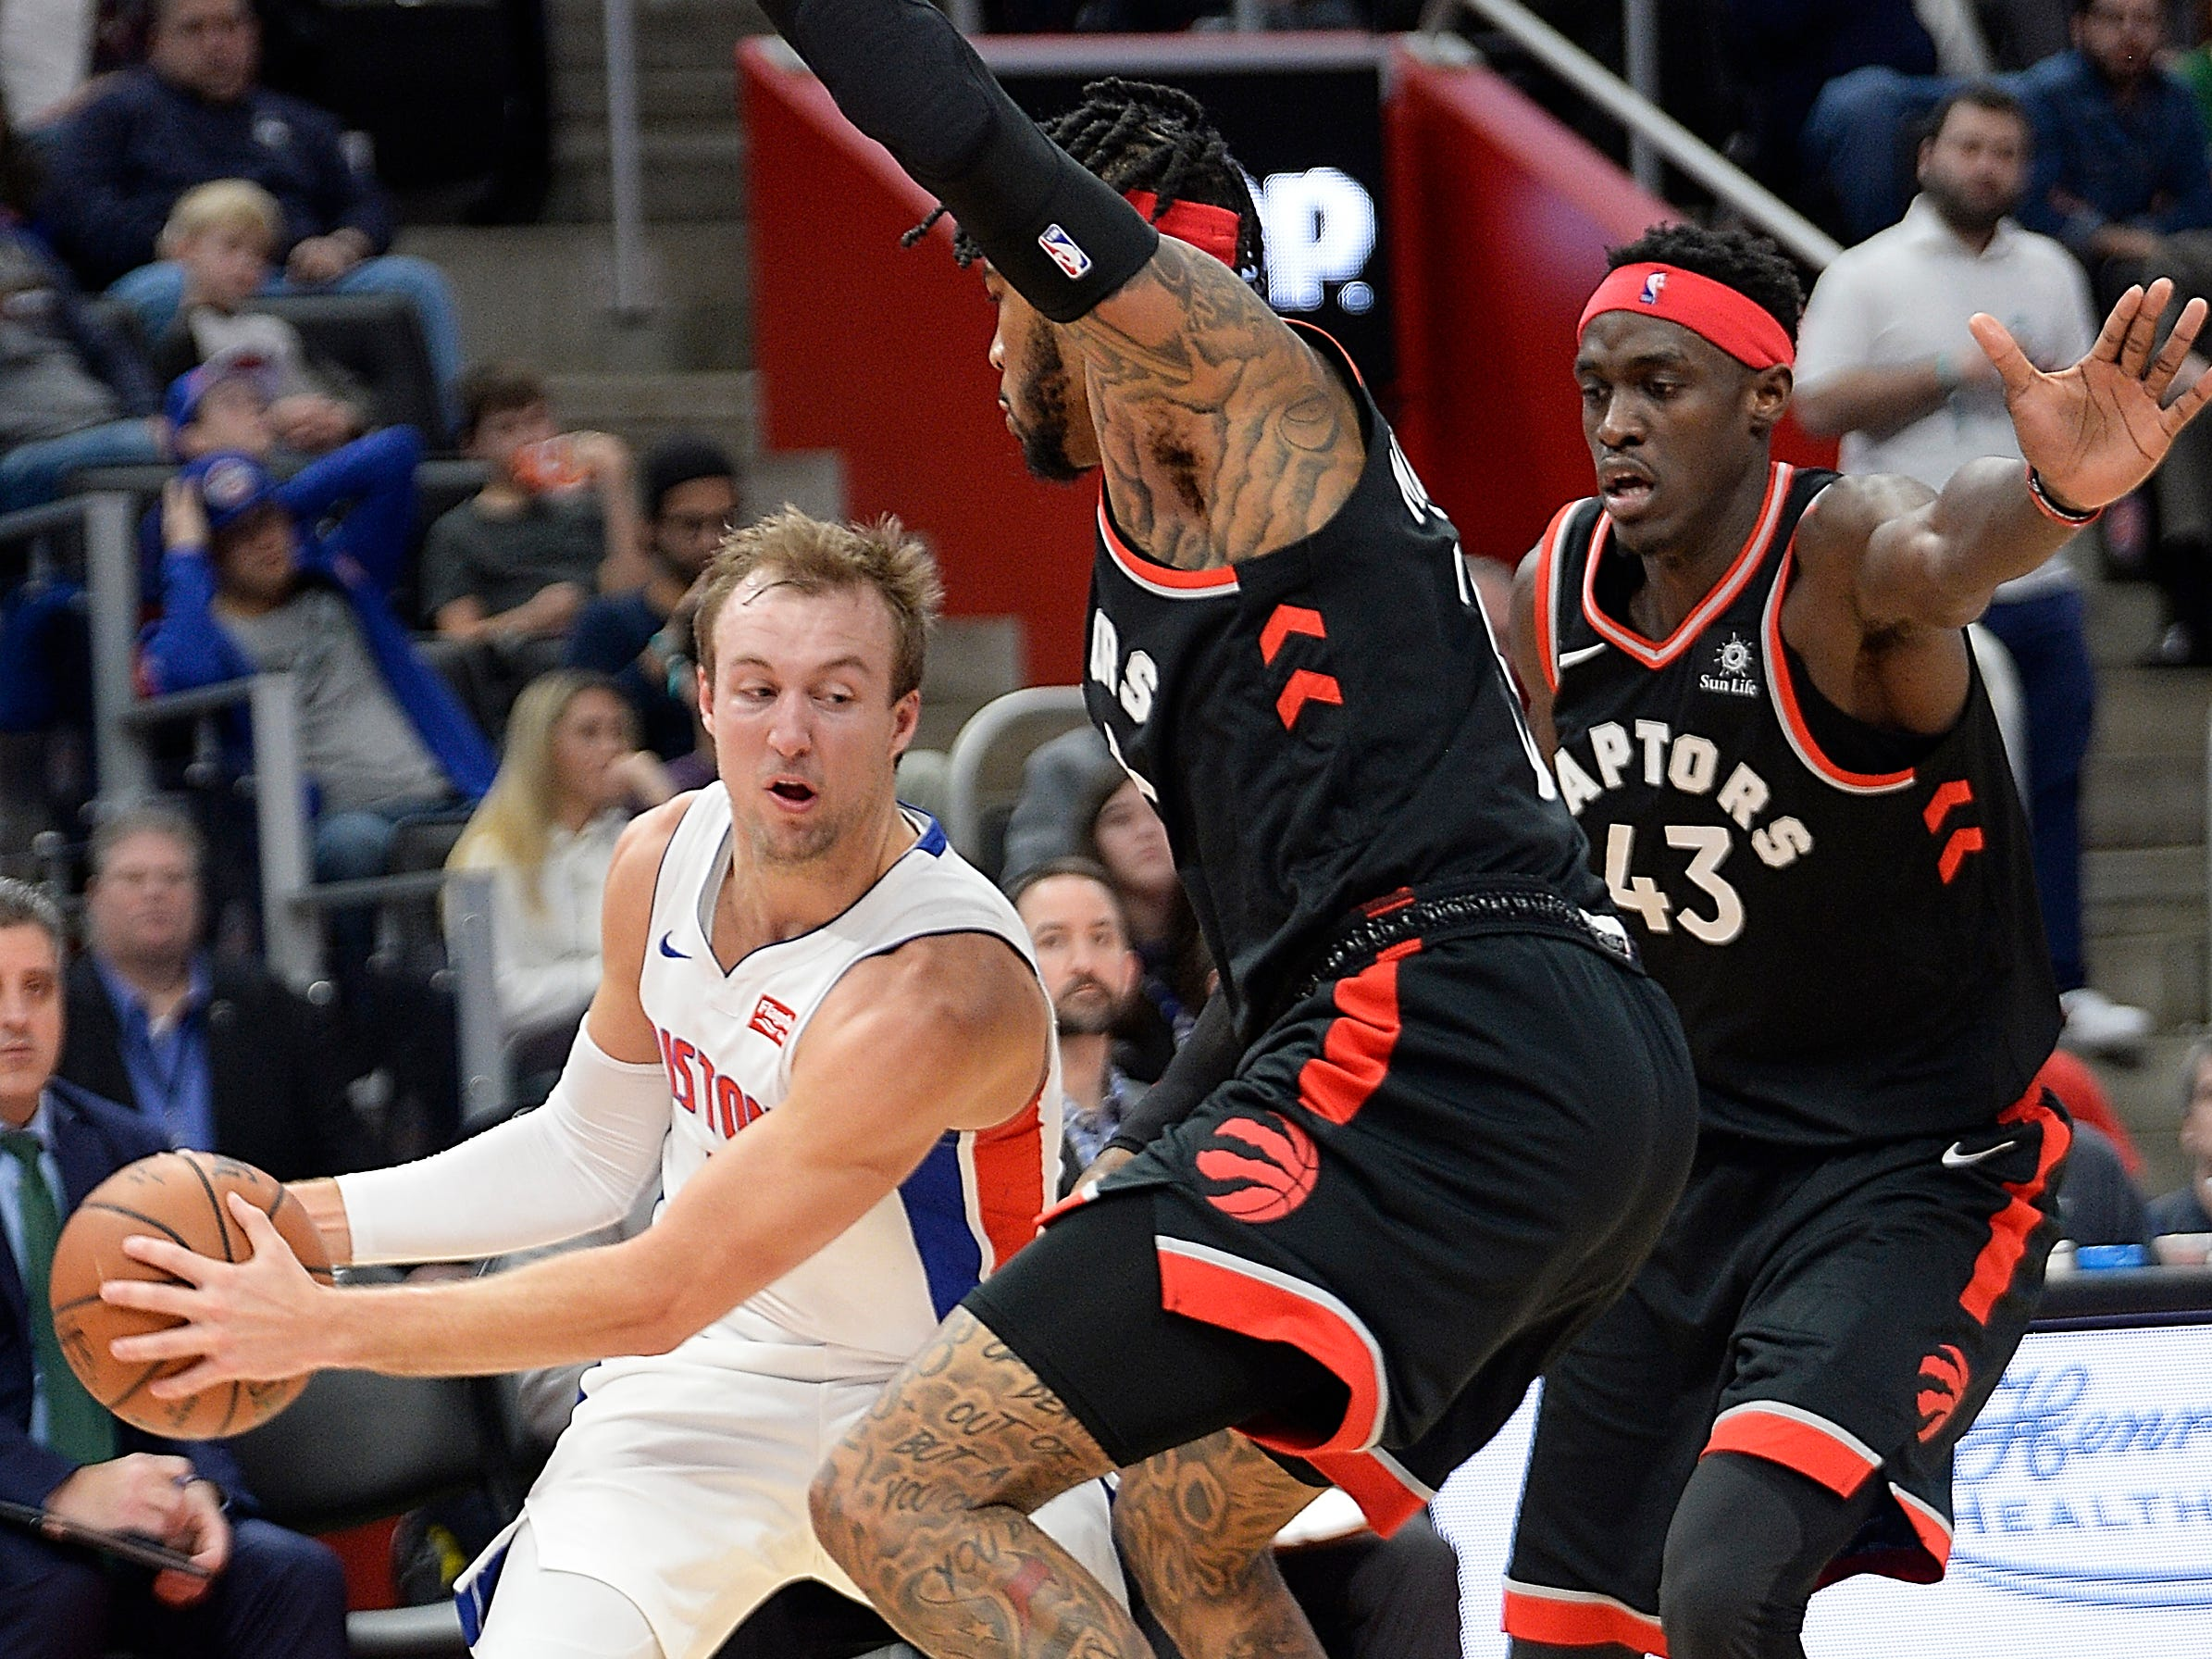 Pistons' Luke Kennard looks for room around Raptors' l-r, Eric Moreland and Pascal Siakam in the fourth quarter.